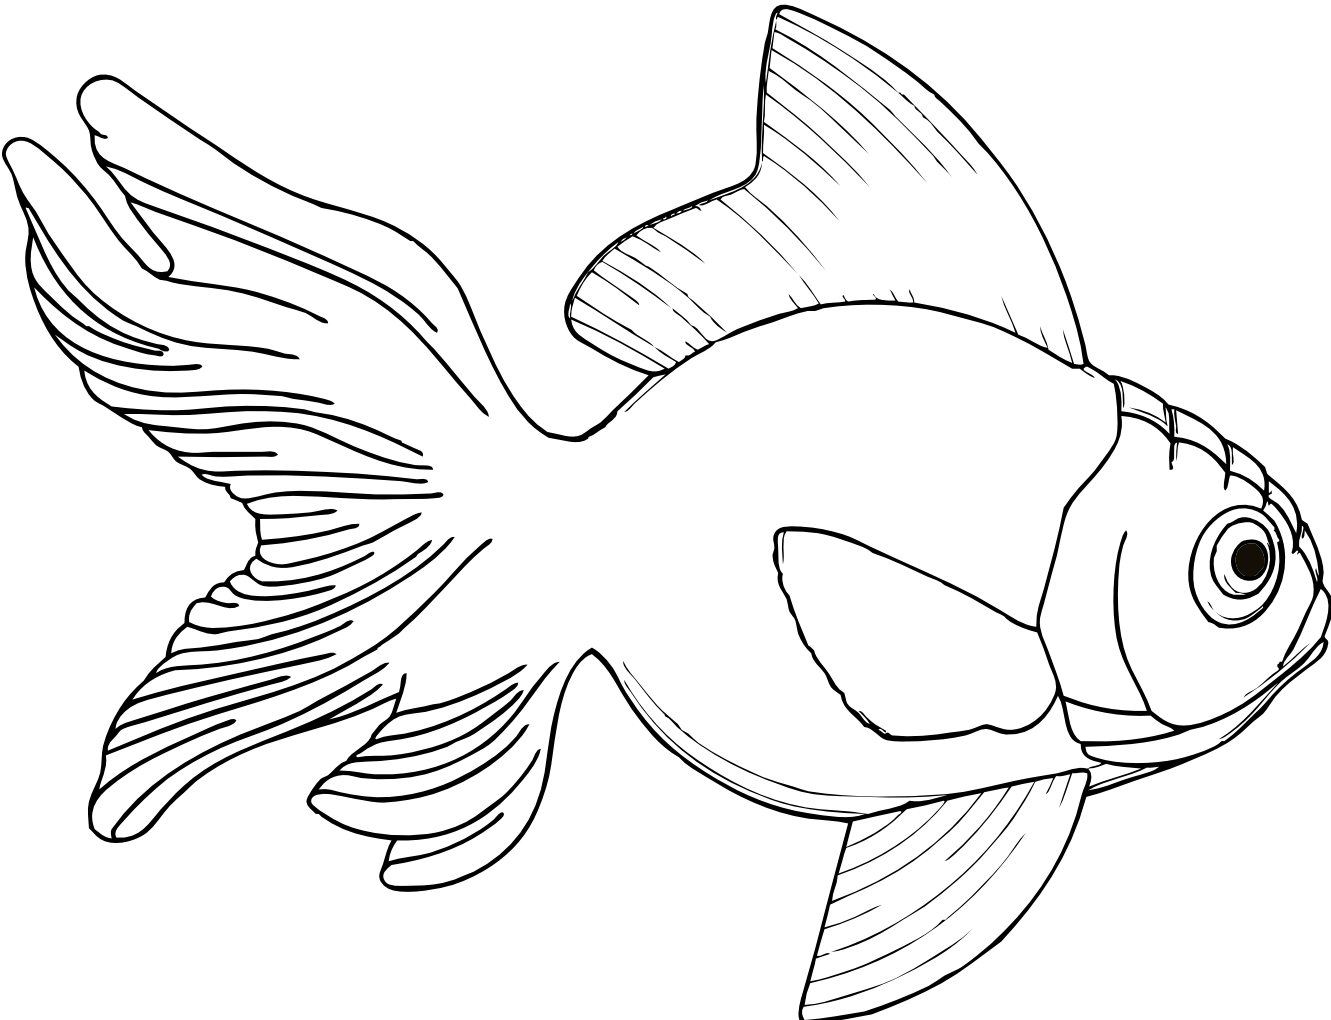 Line Drawing Clip Art : Fish line art clipart best